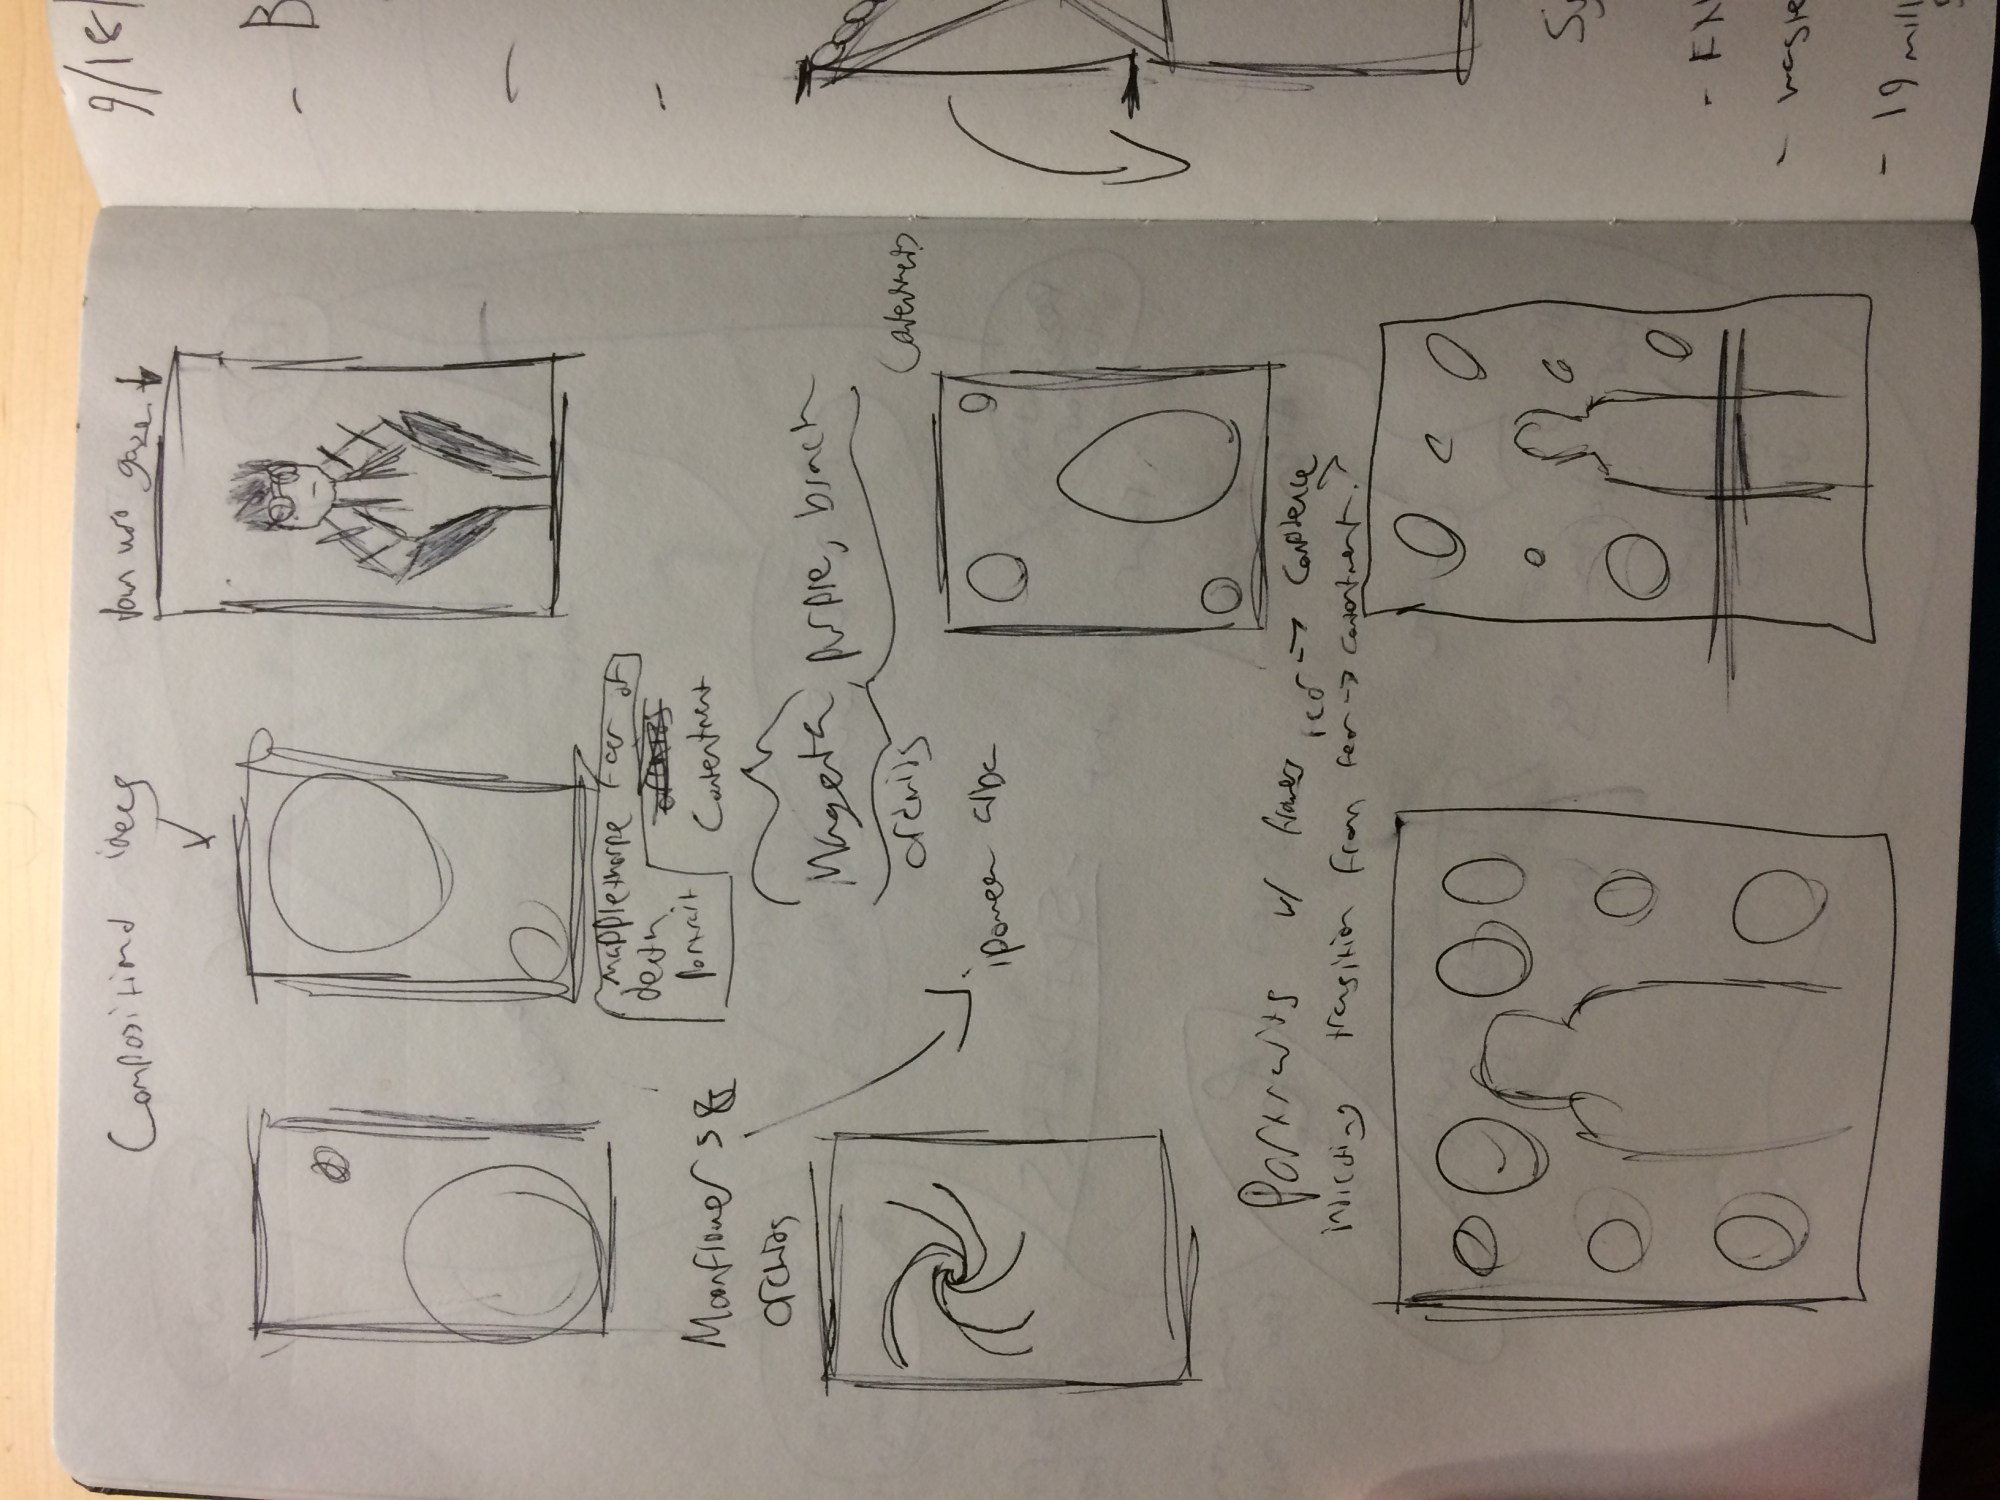 hight resolution of project 2 story in one frame sequence group sequence